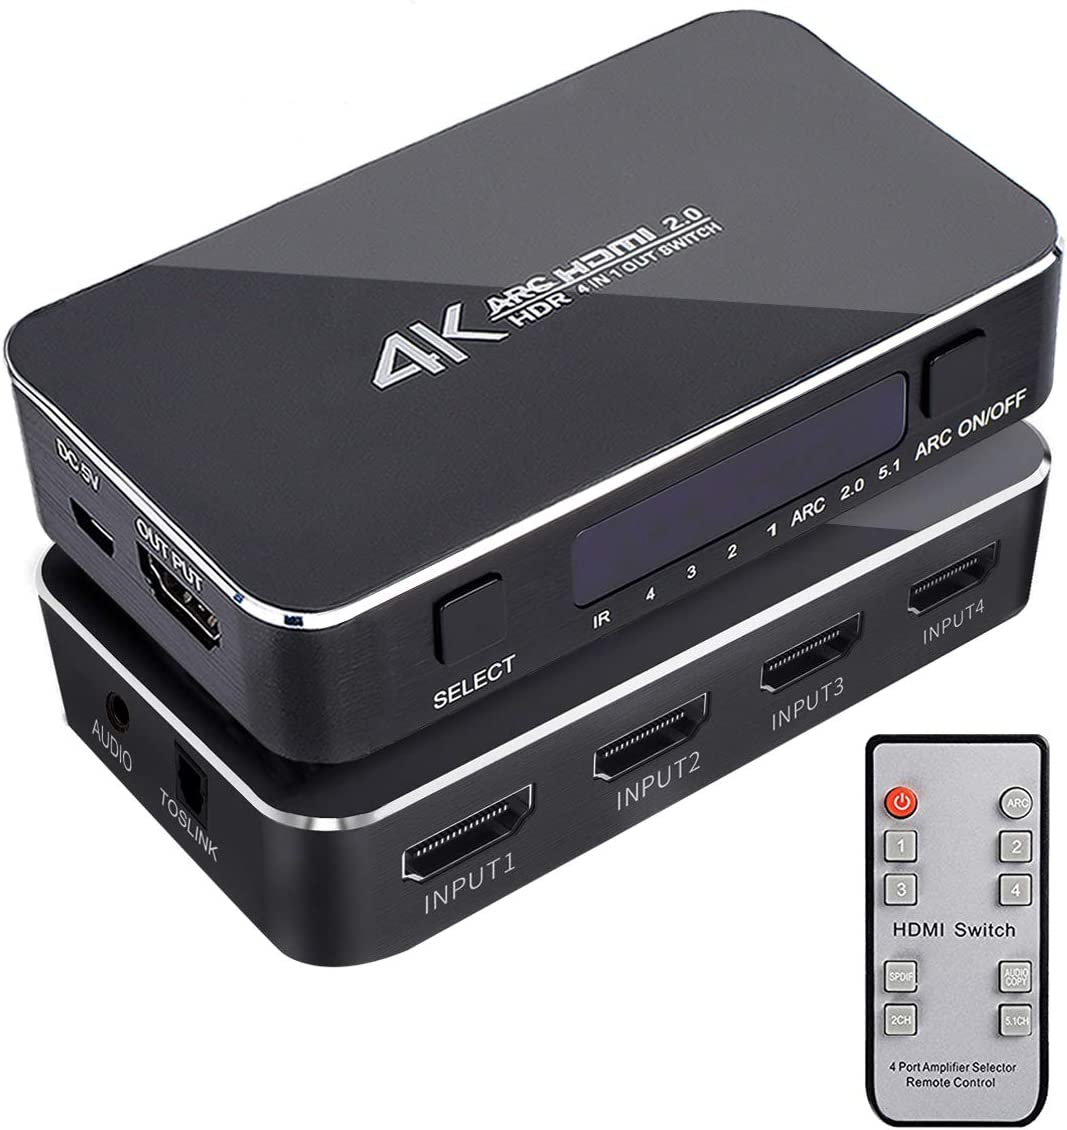 HDMI Switch Box Support 4K 3D HDMI Switch 1080P 4 Port HDMI Switch with Remote